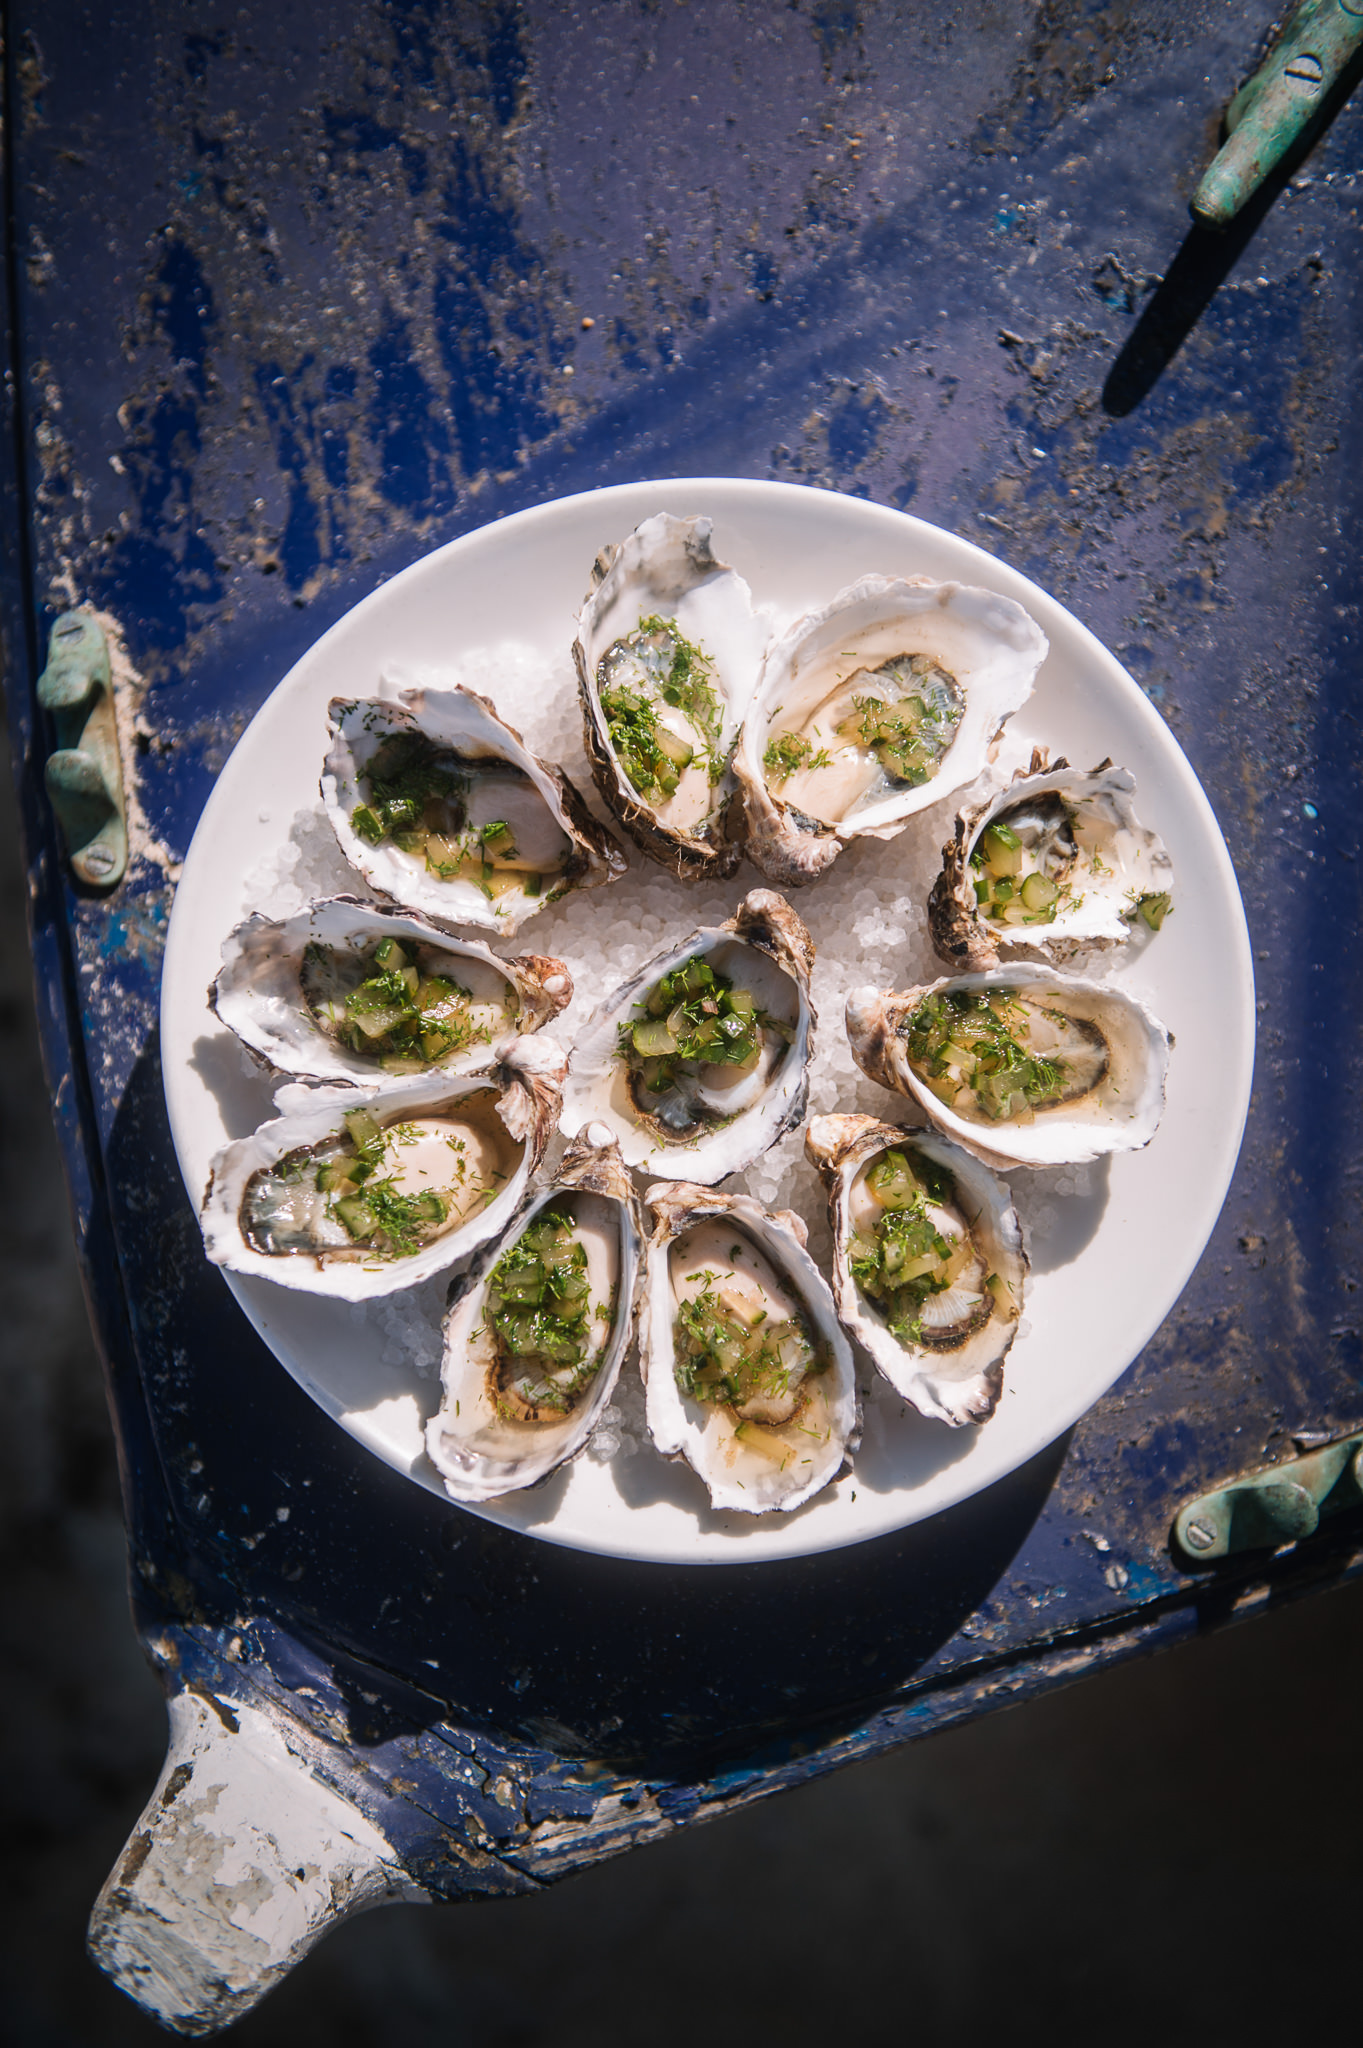 Tasmanian oysters prepared and served by Smolt kitchen